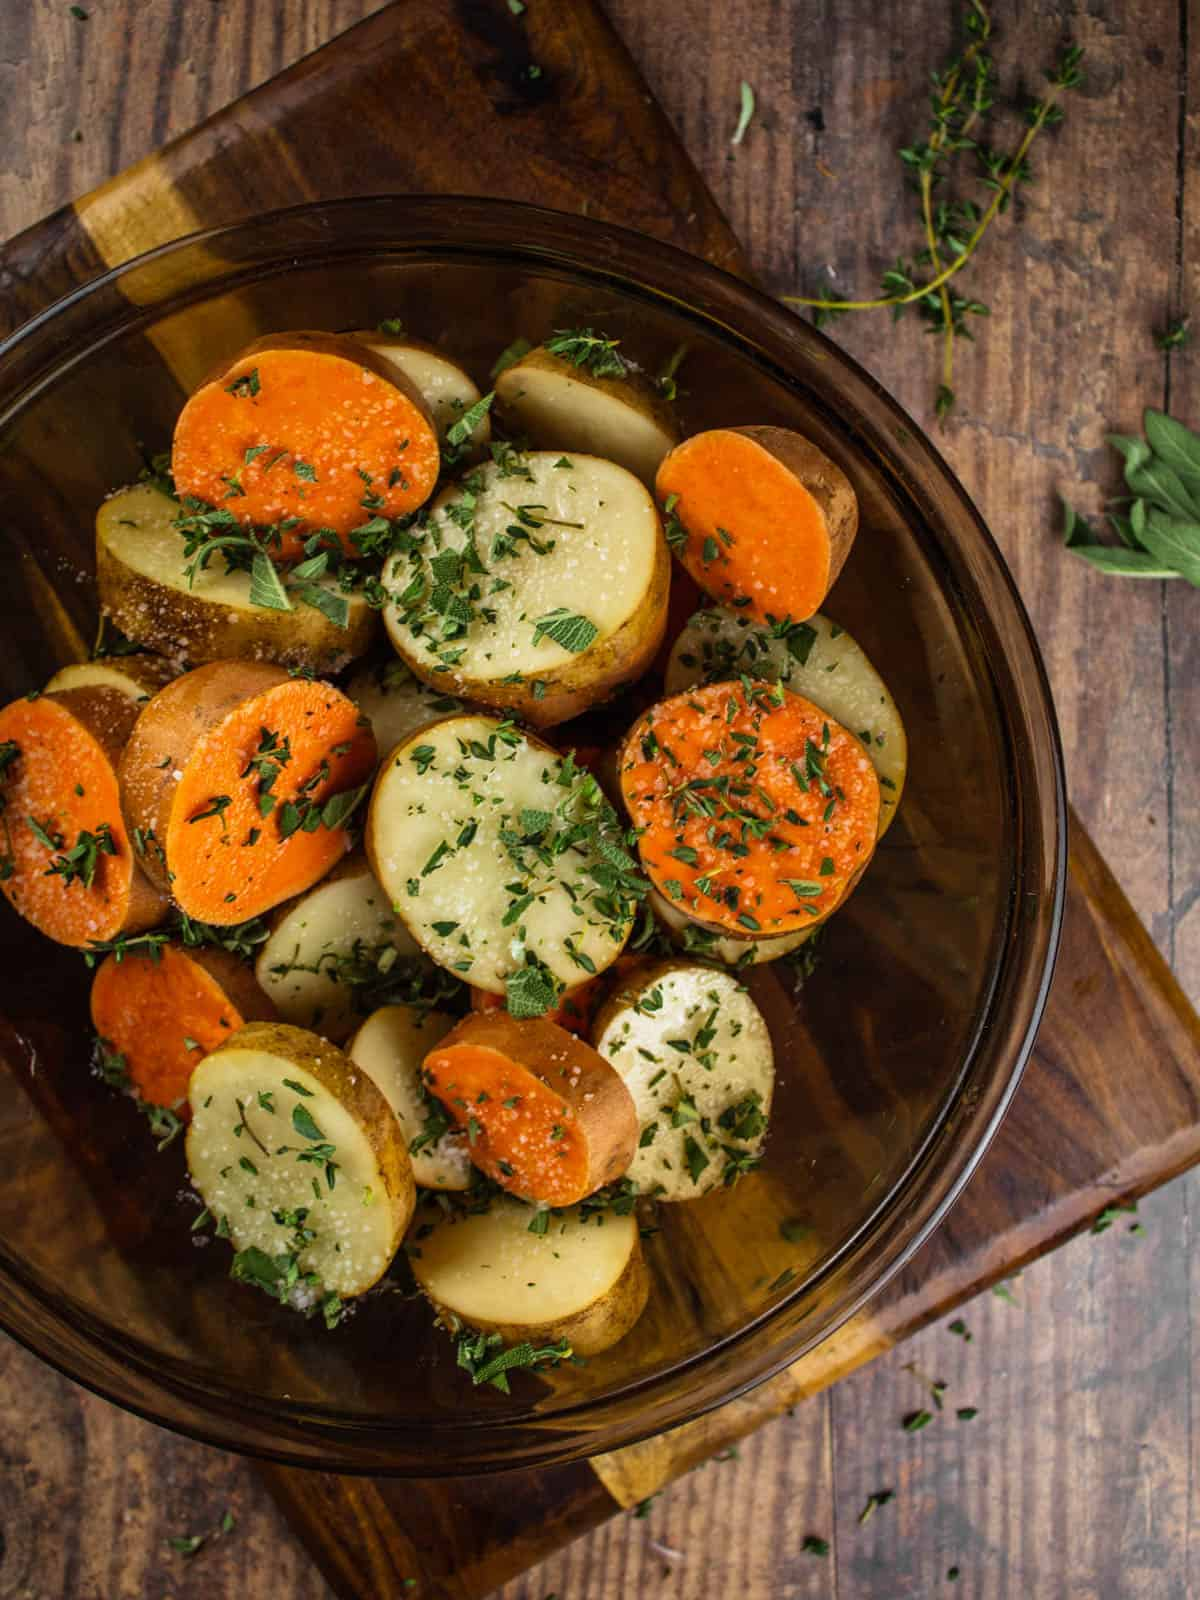 sliced sweet and white potatoes in a glass bowl with fresh herbs